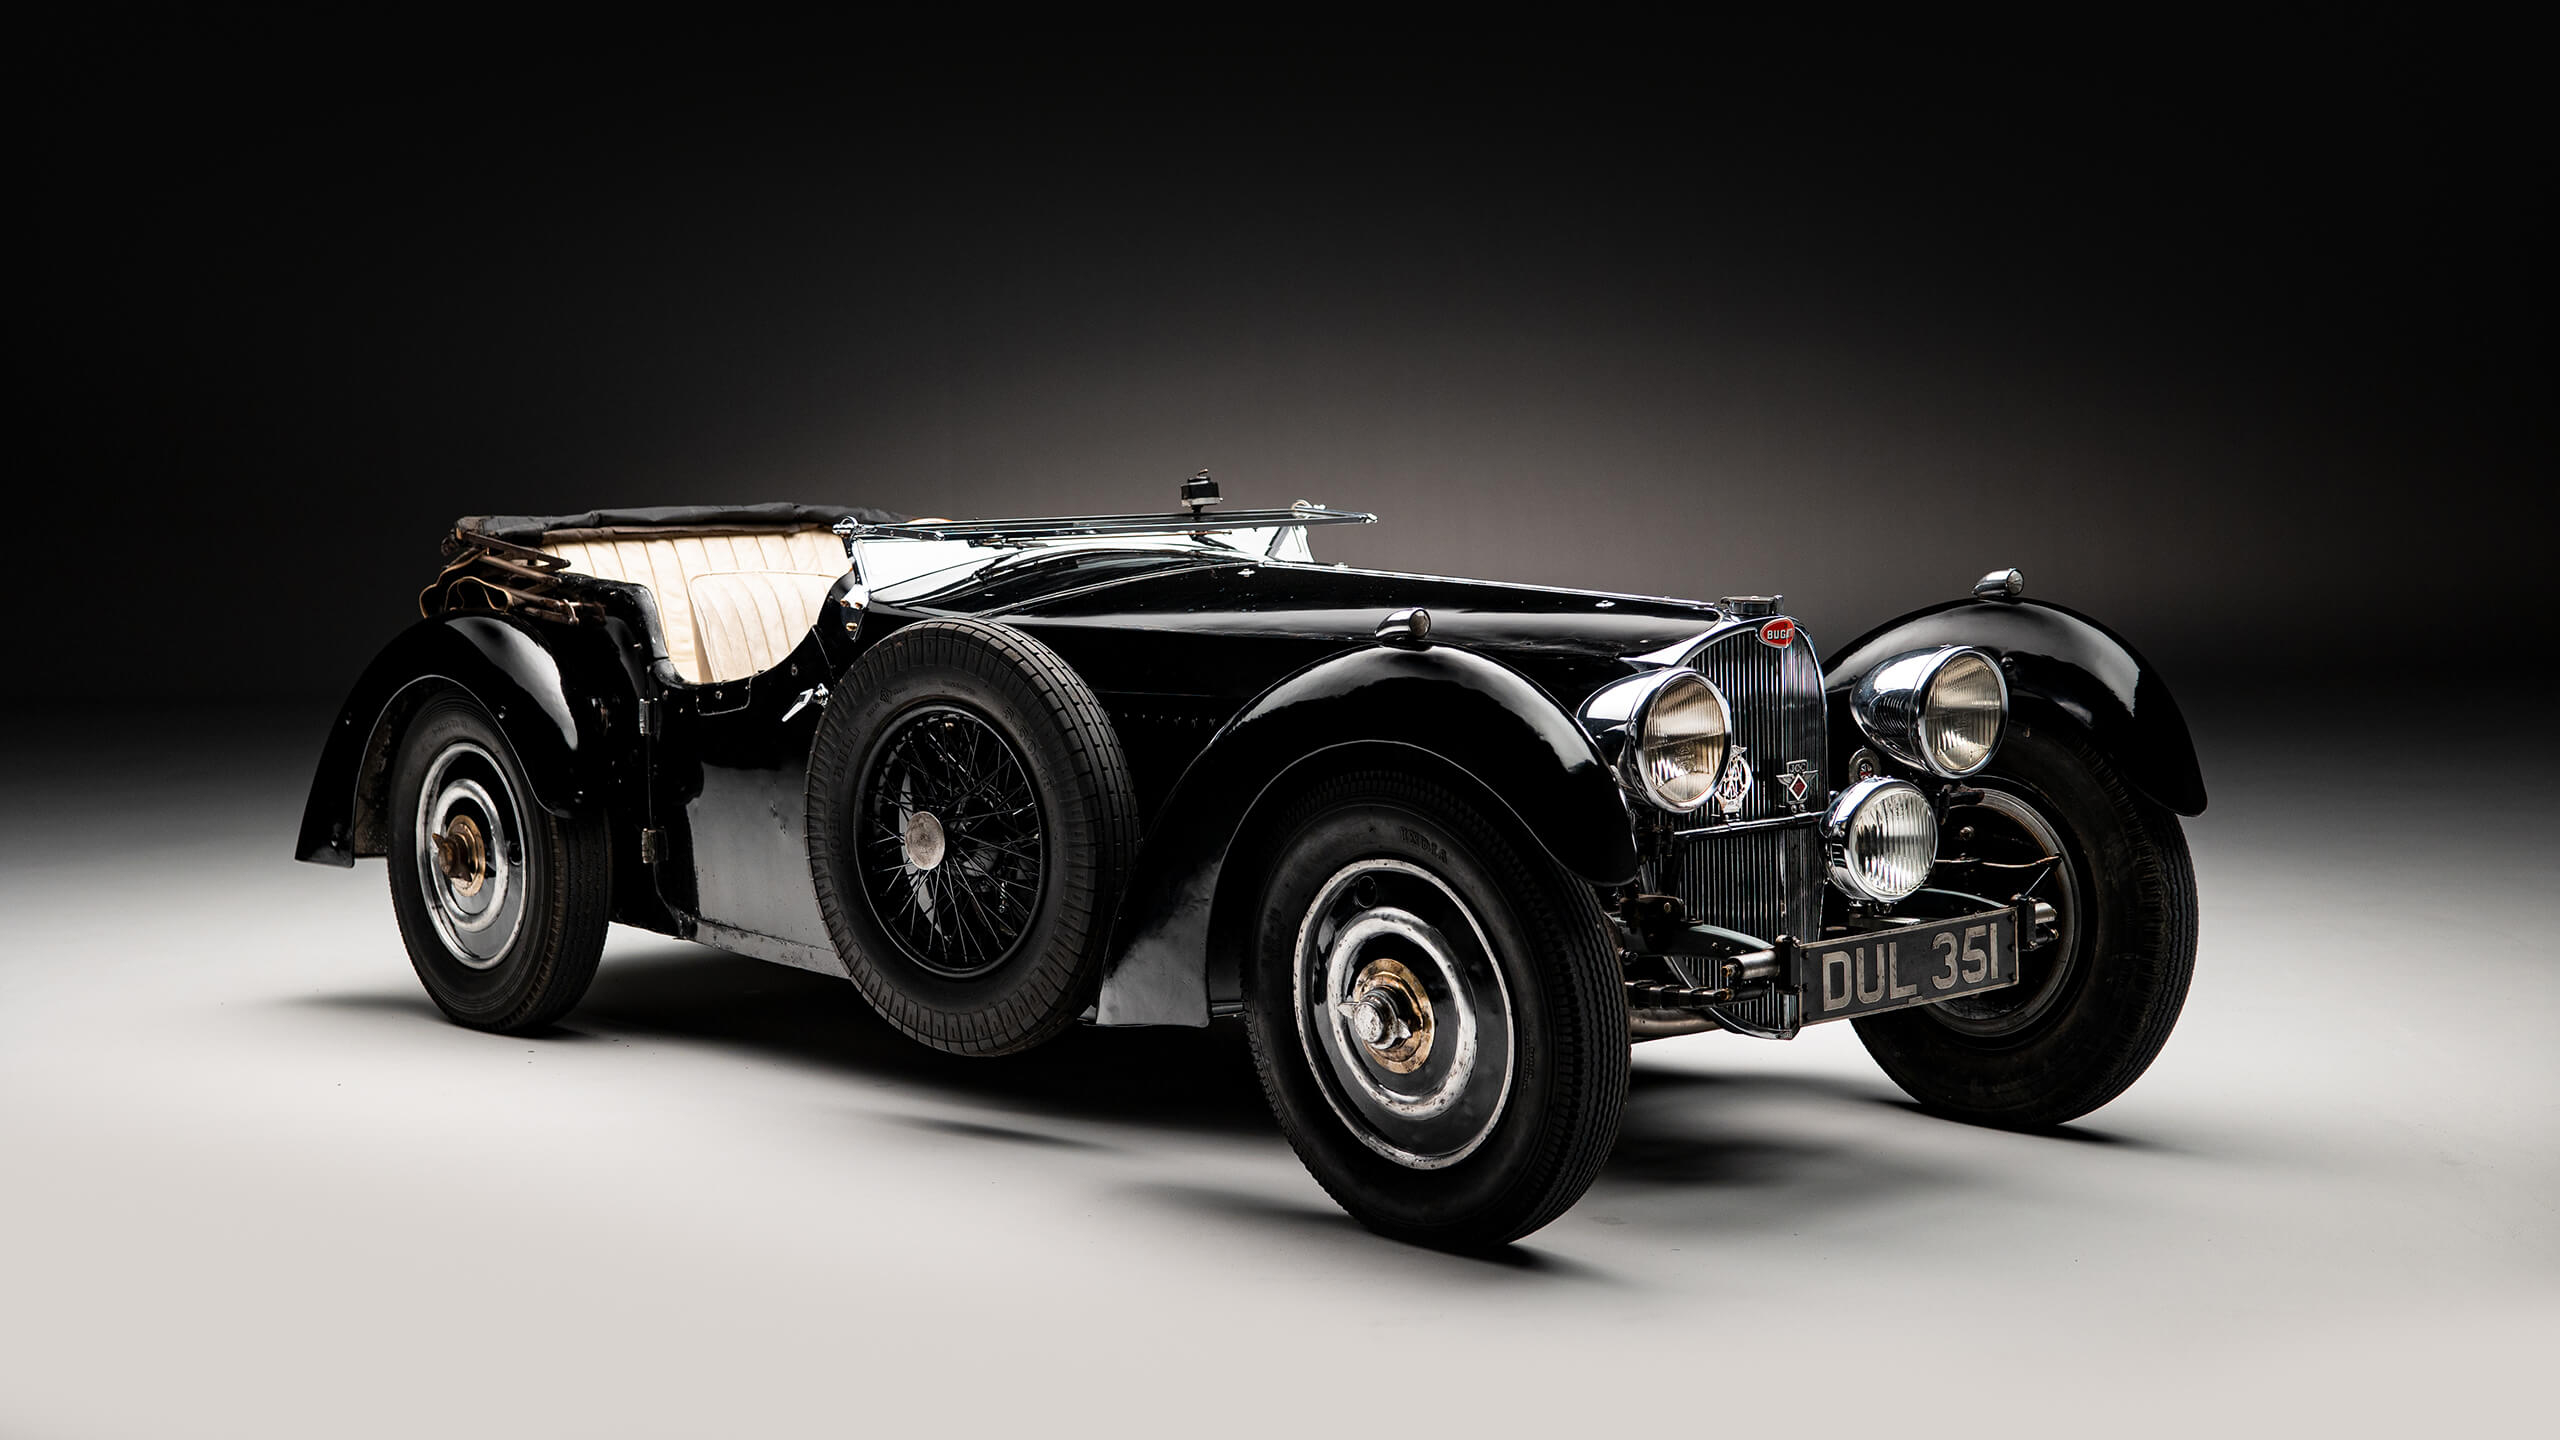 1937 Bugatti Type 57S sells for £4m at Bonhams' latest Bond St sale